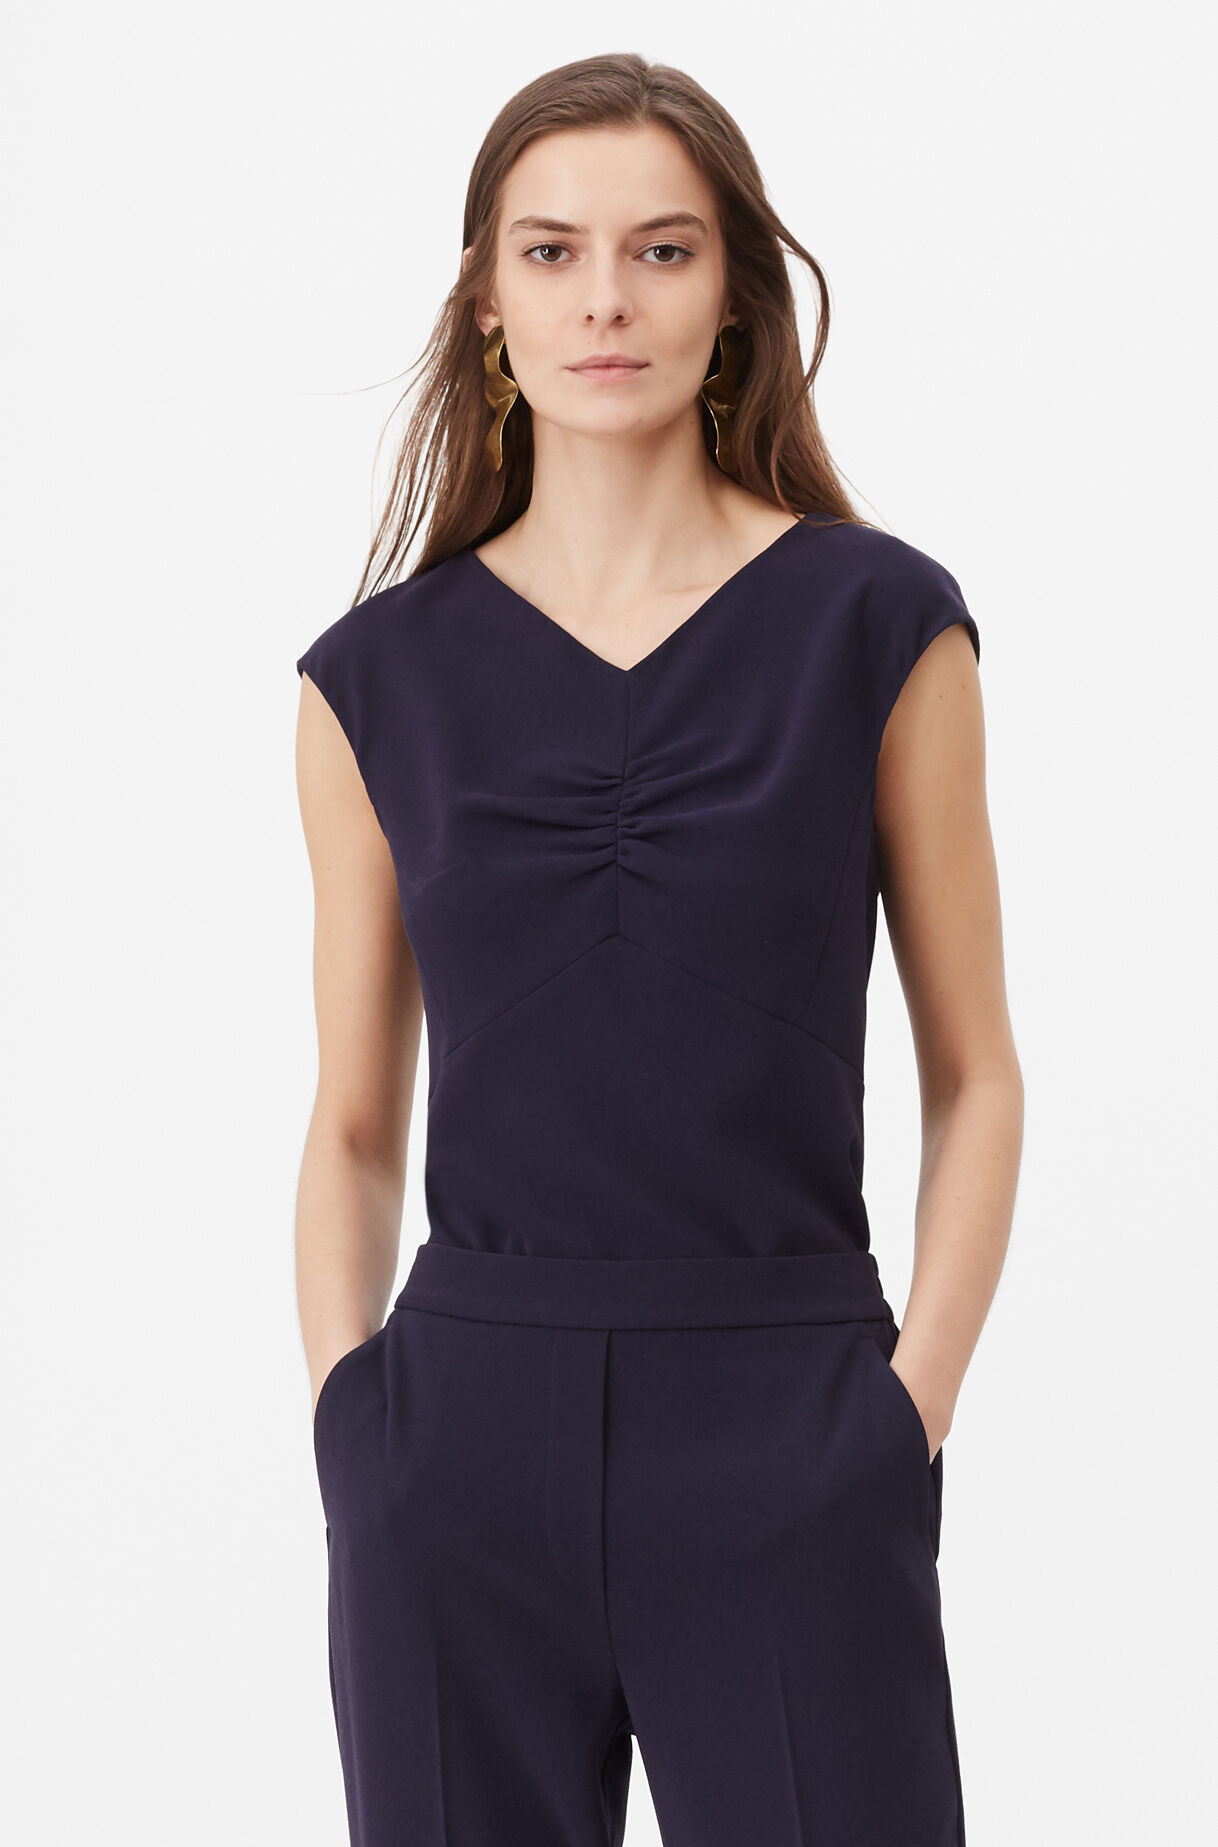 Tailored Crepe Top, , large